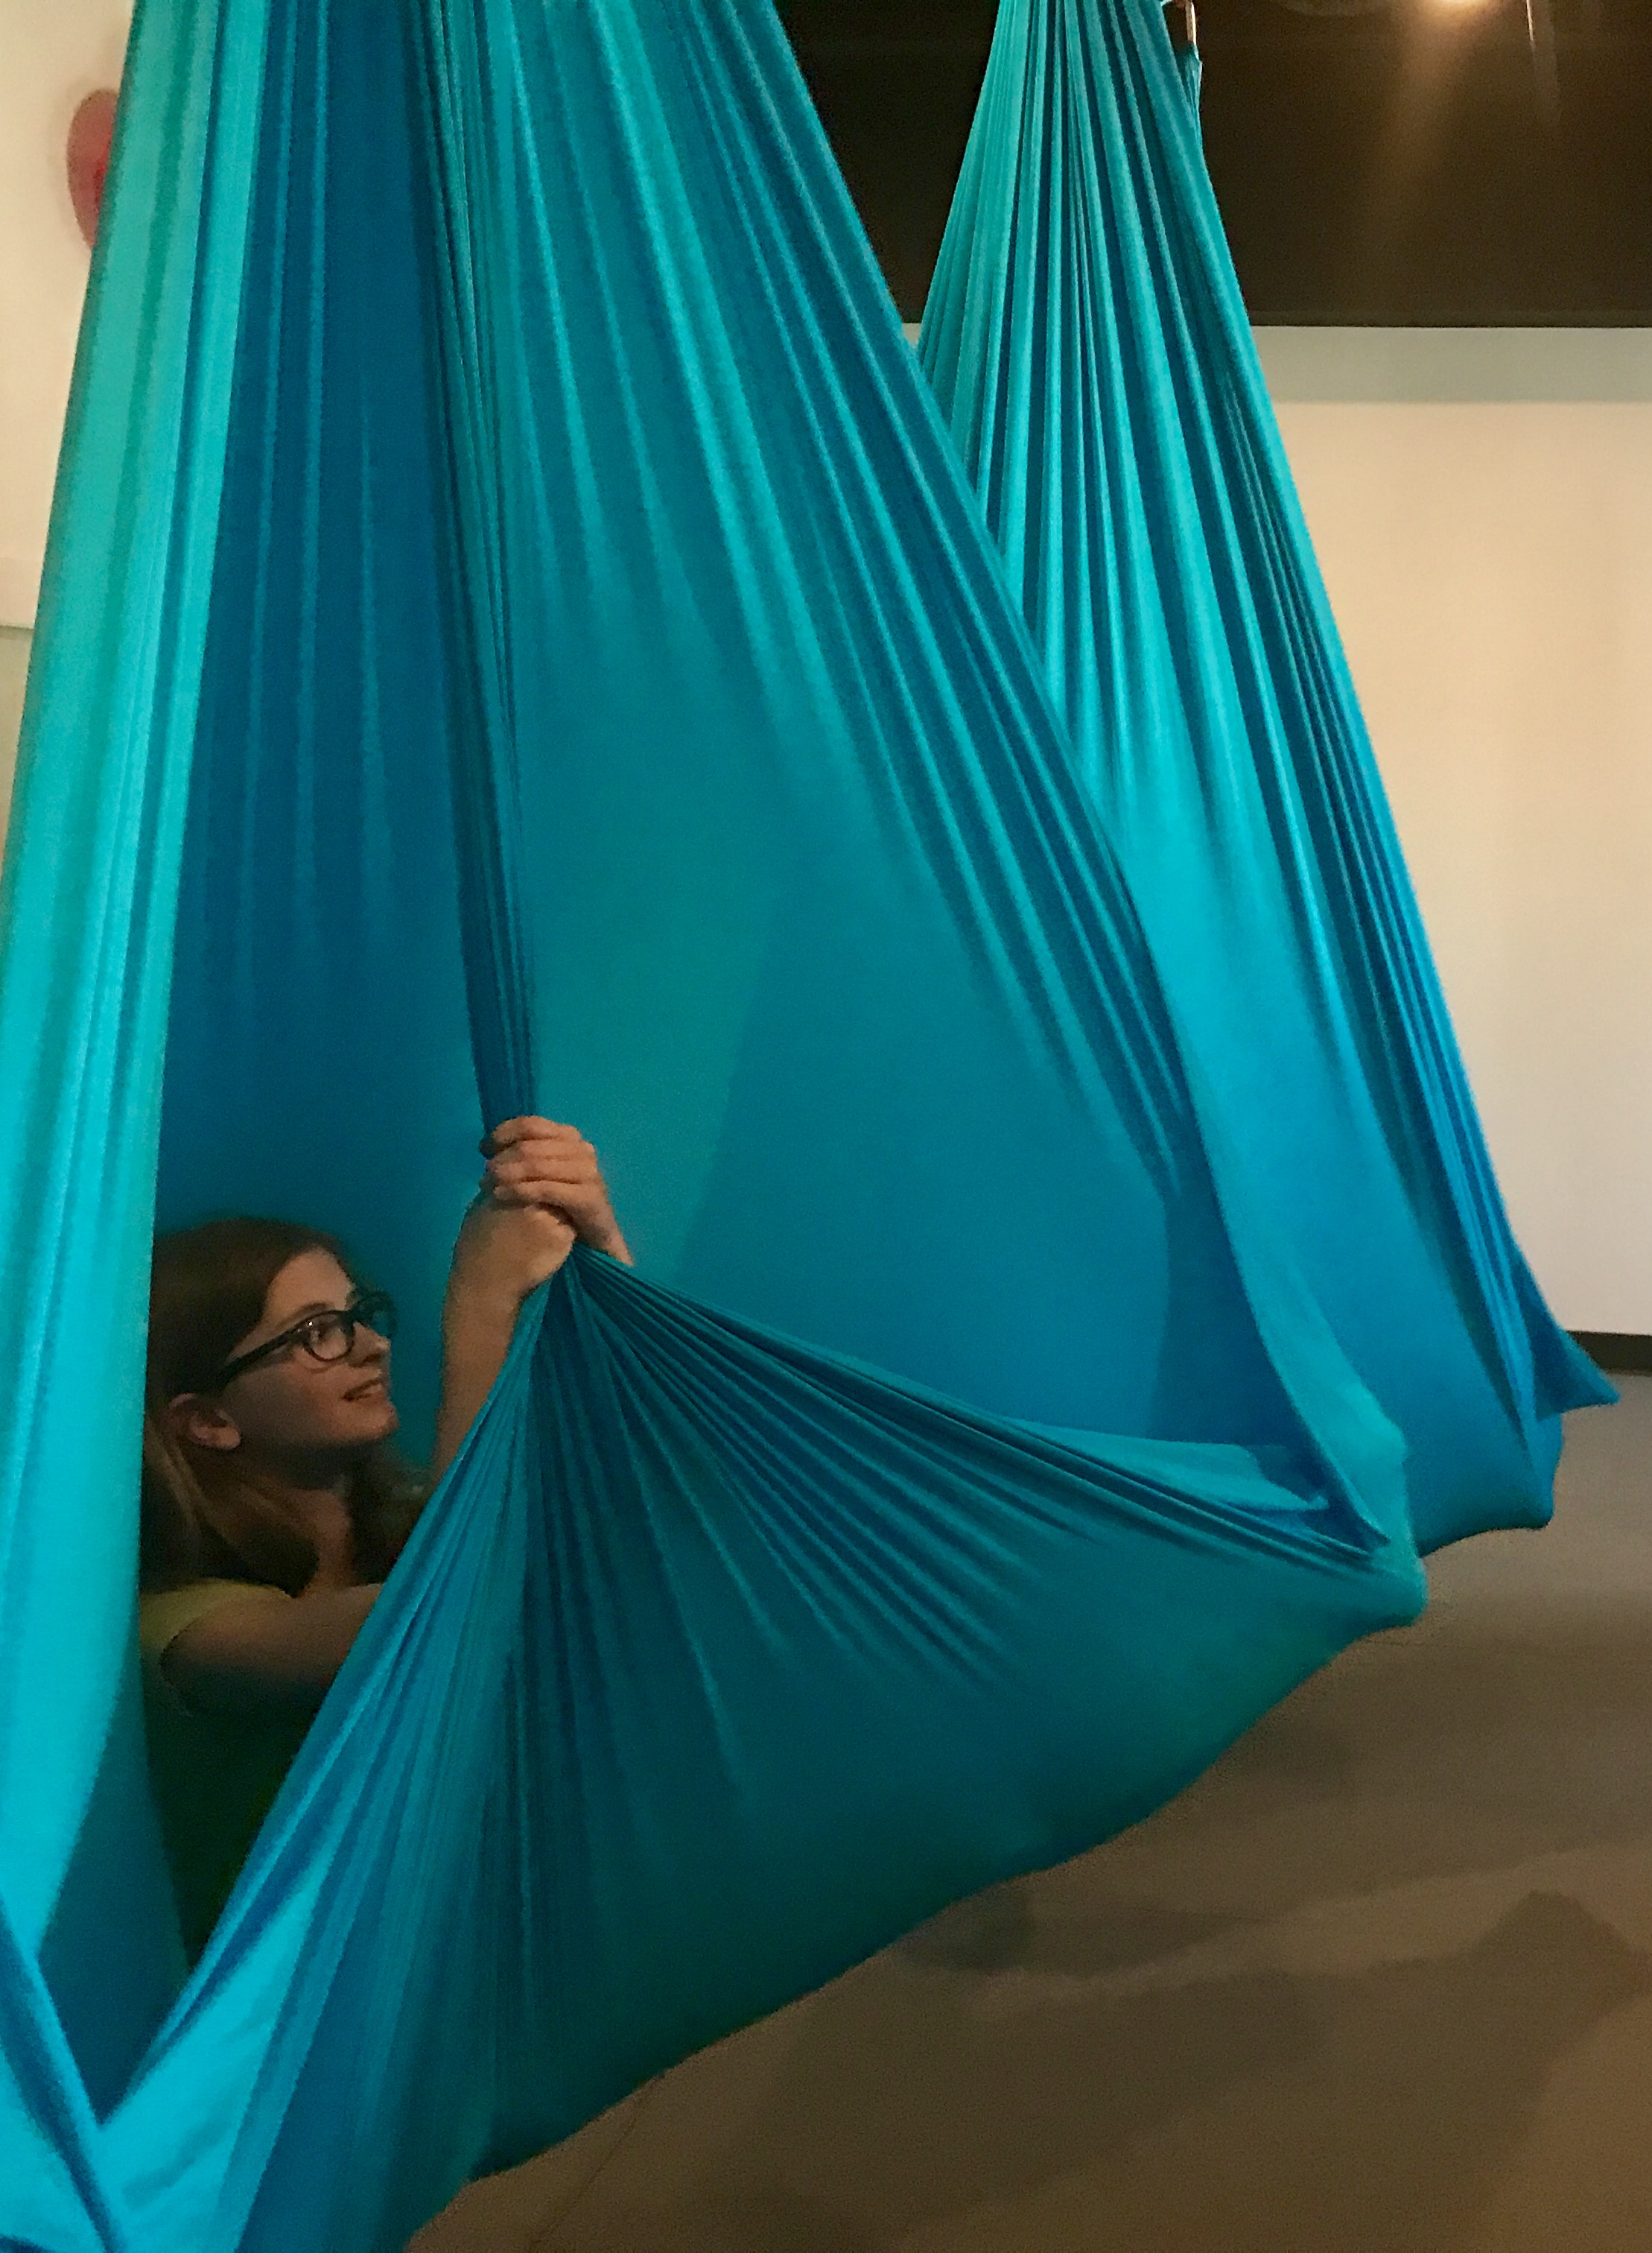 Frequently Asked Questions About Aerial Yoga Hammocks